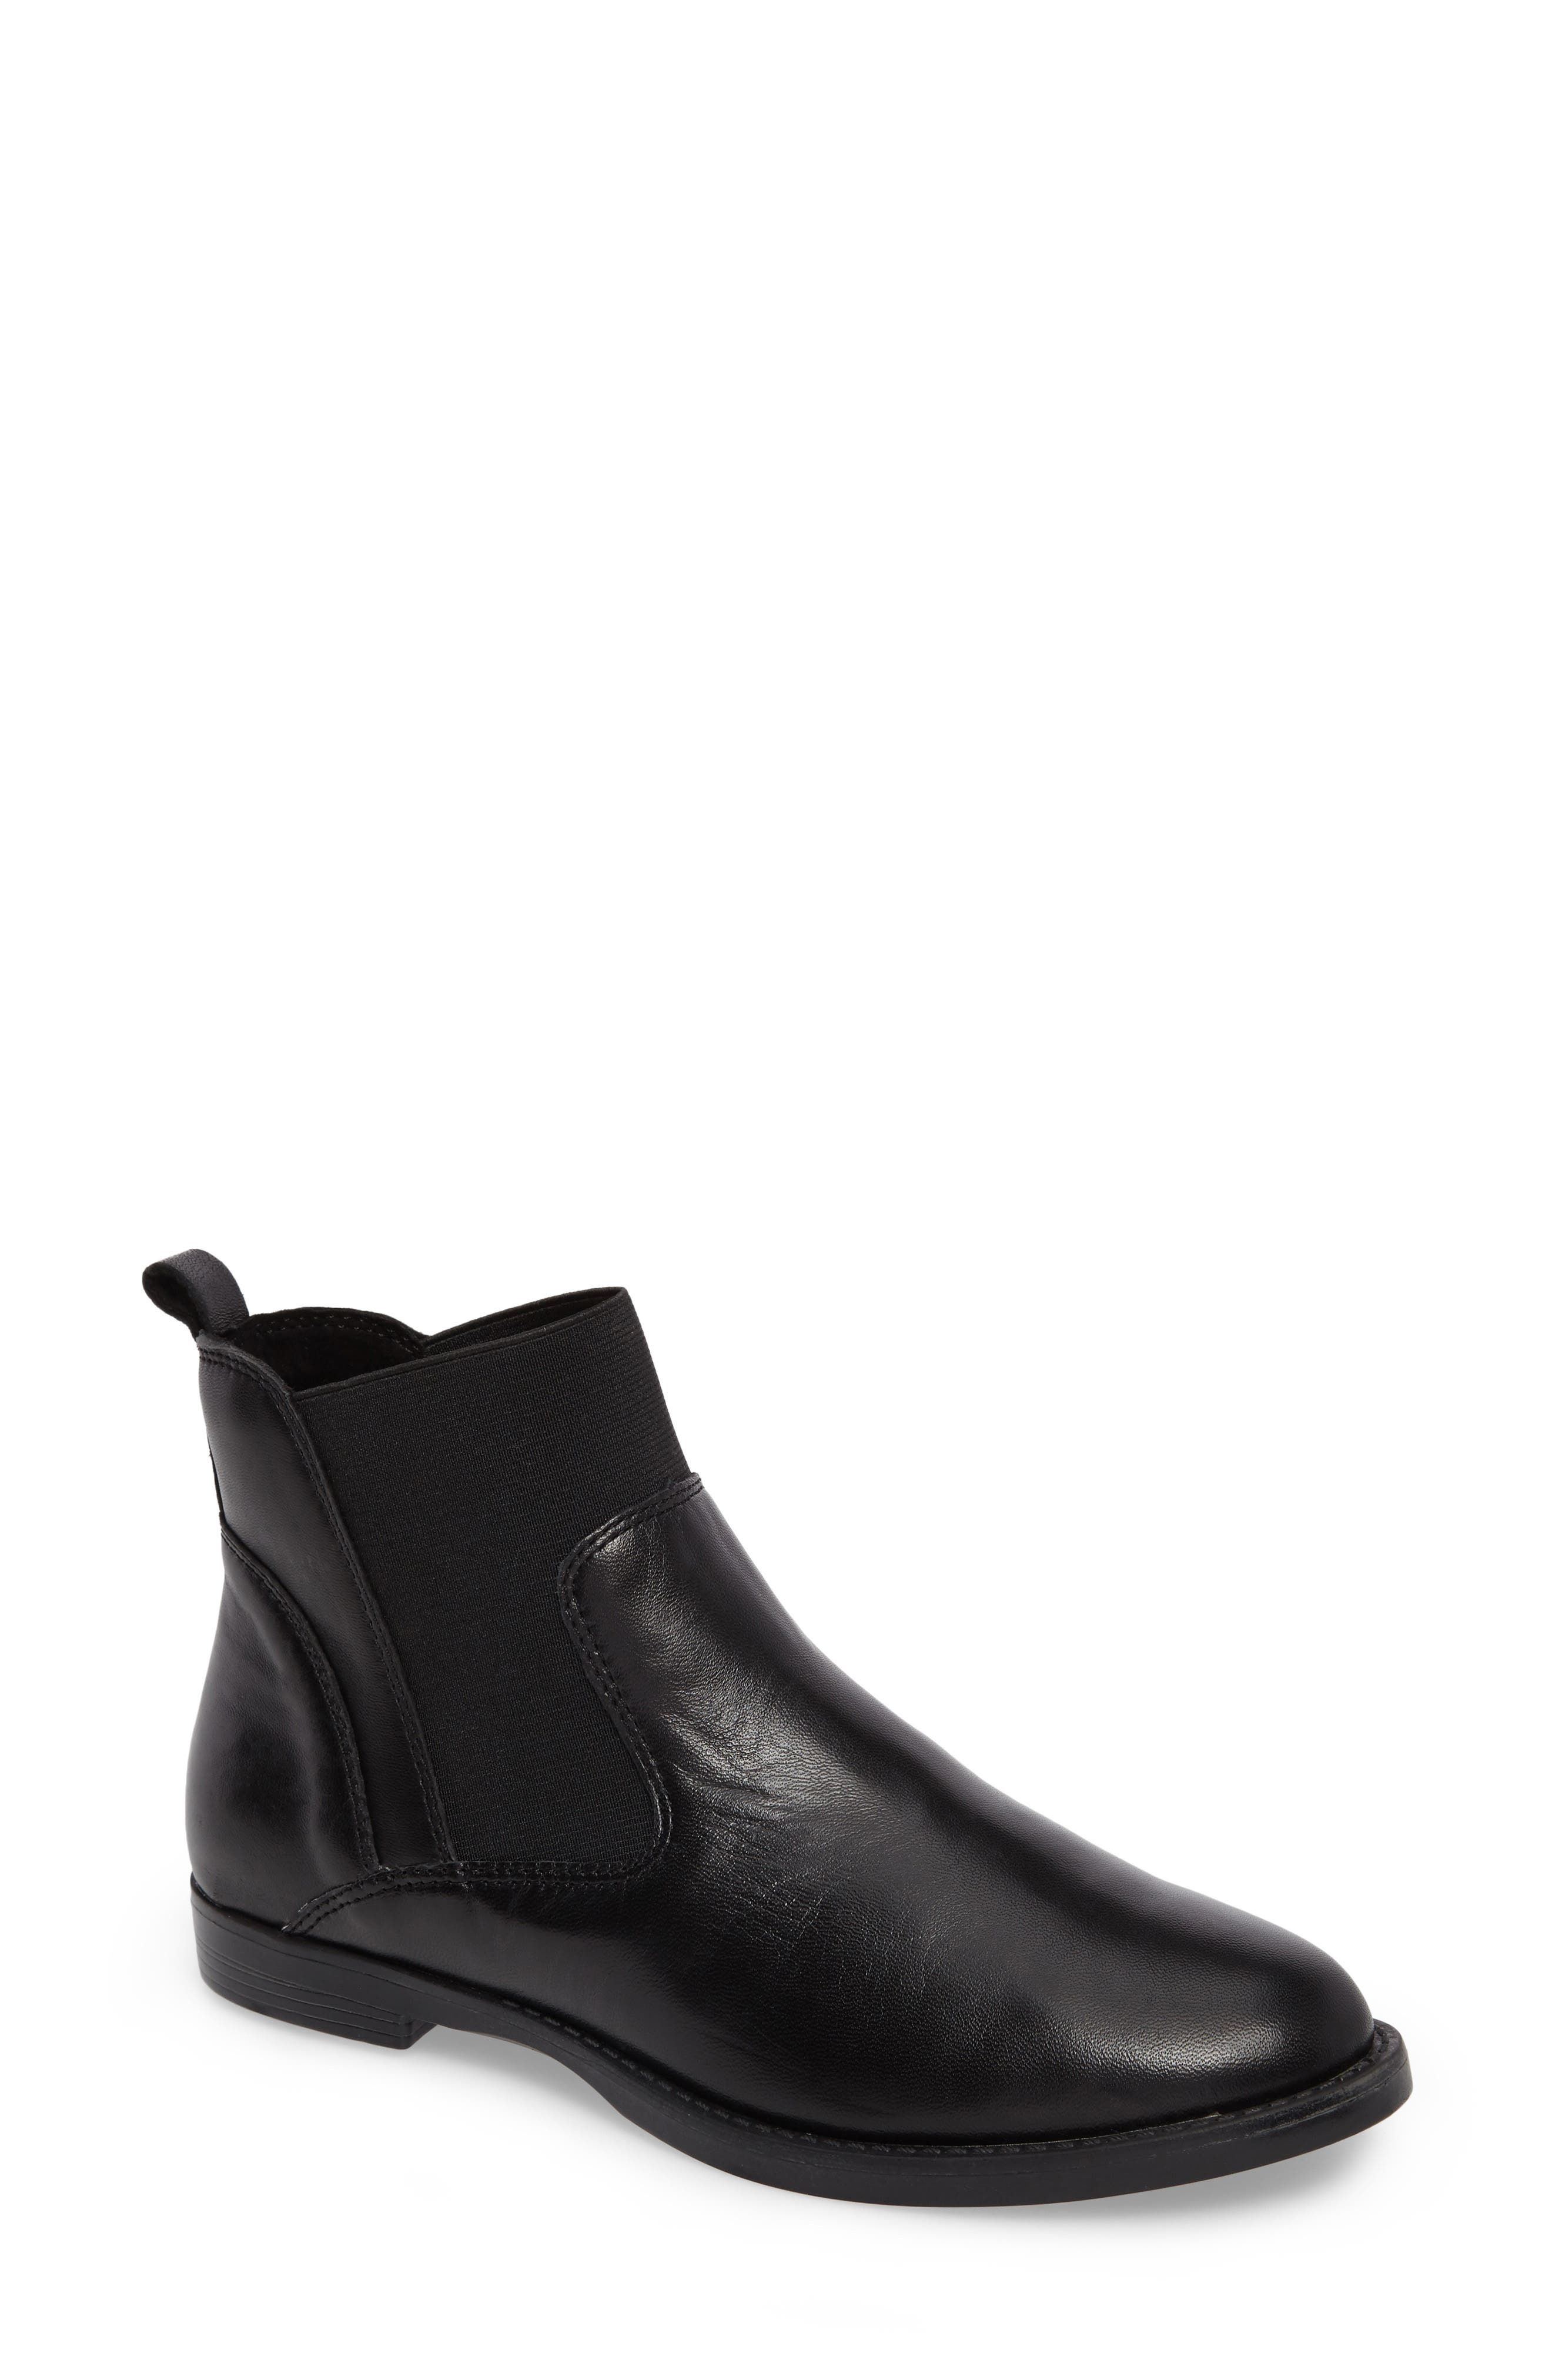 Rayna Chelsea Boot,                         Main,                         color,